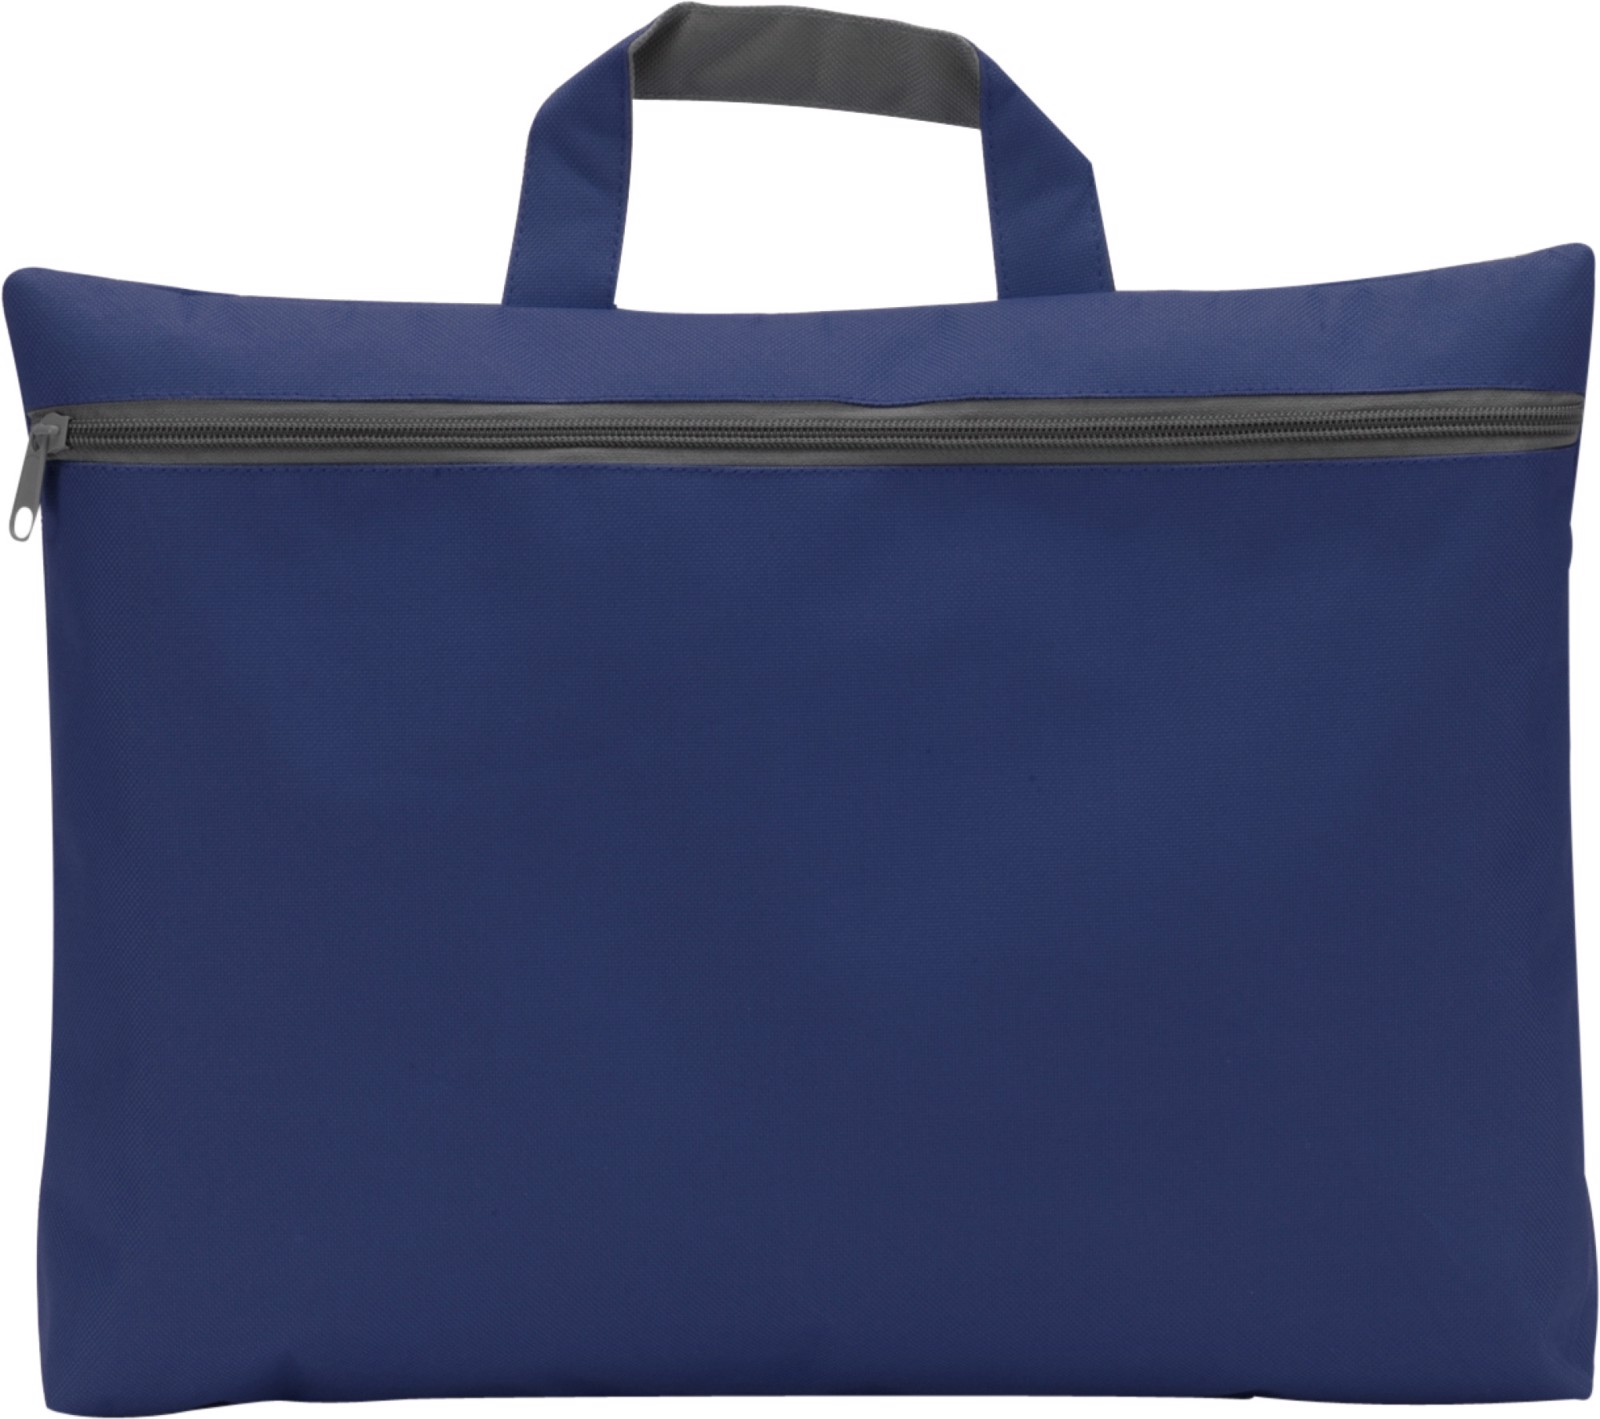 Polyester (600D) conference bag - Blue